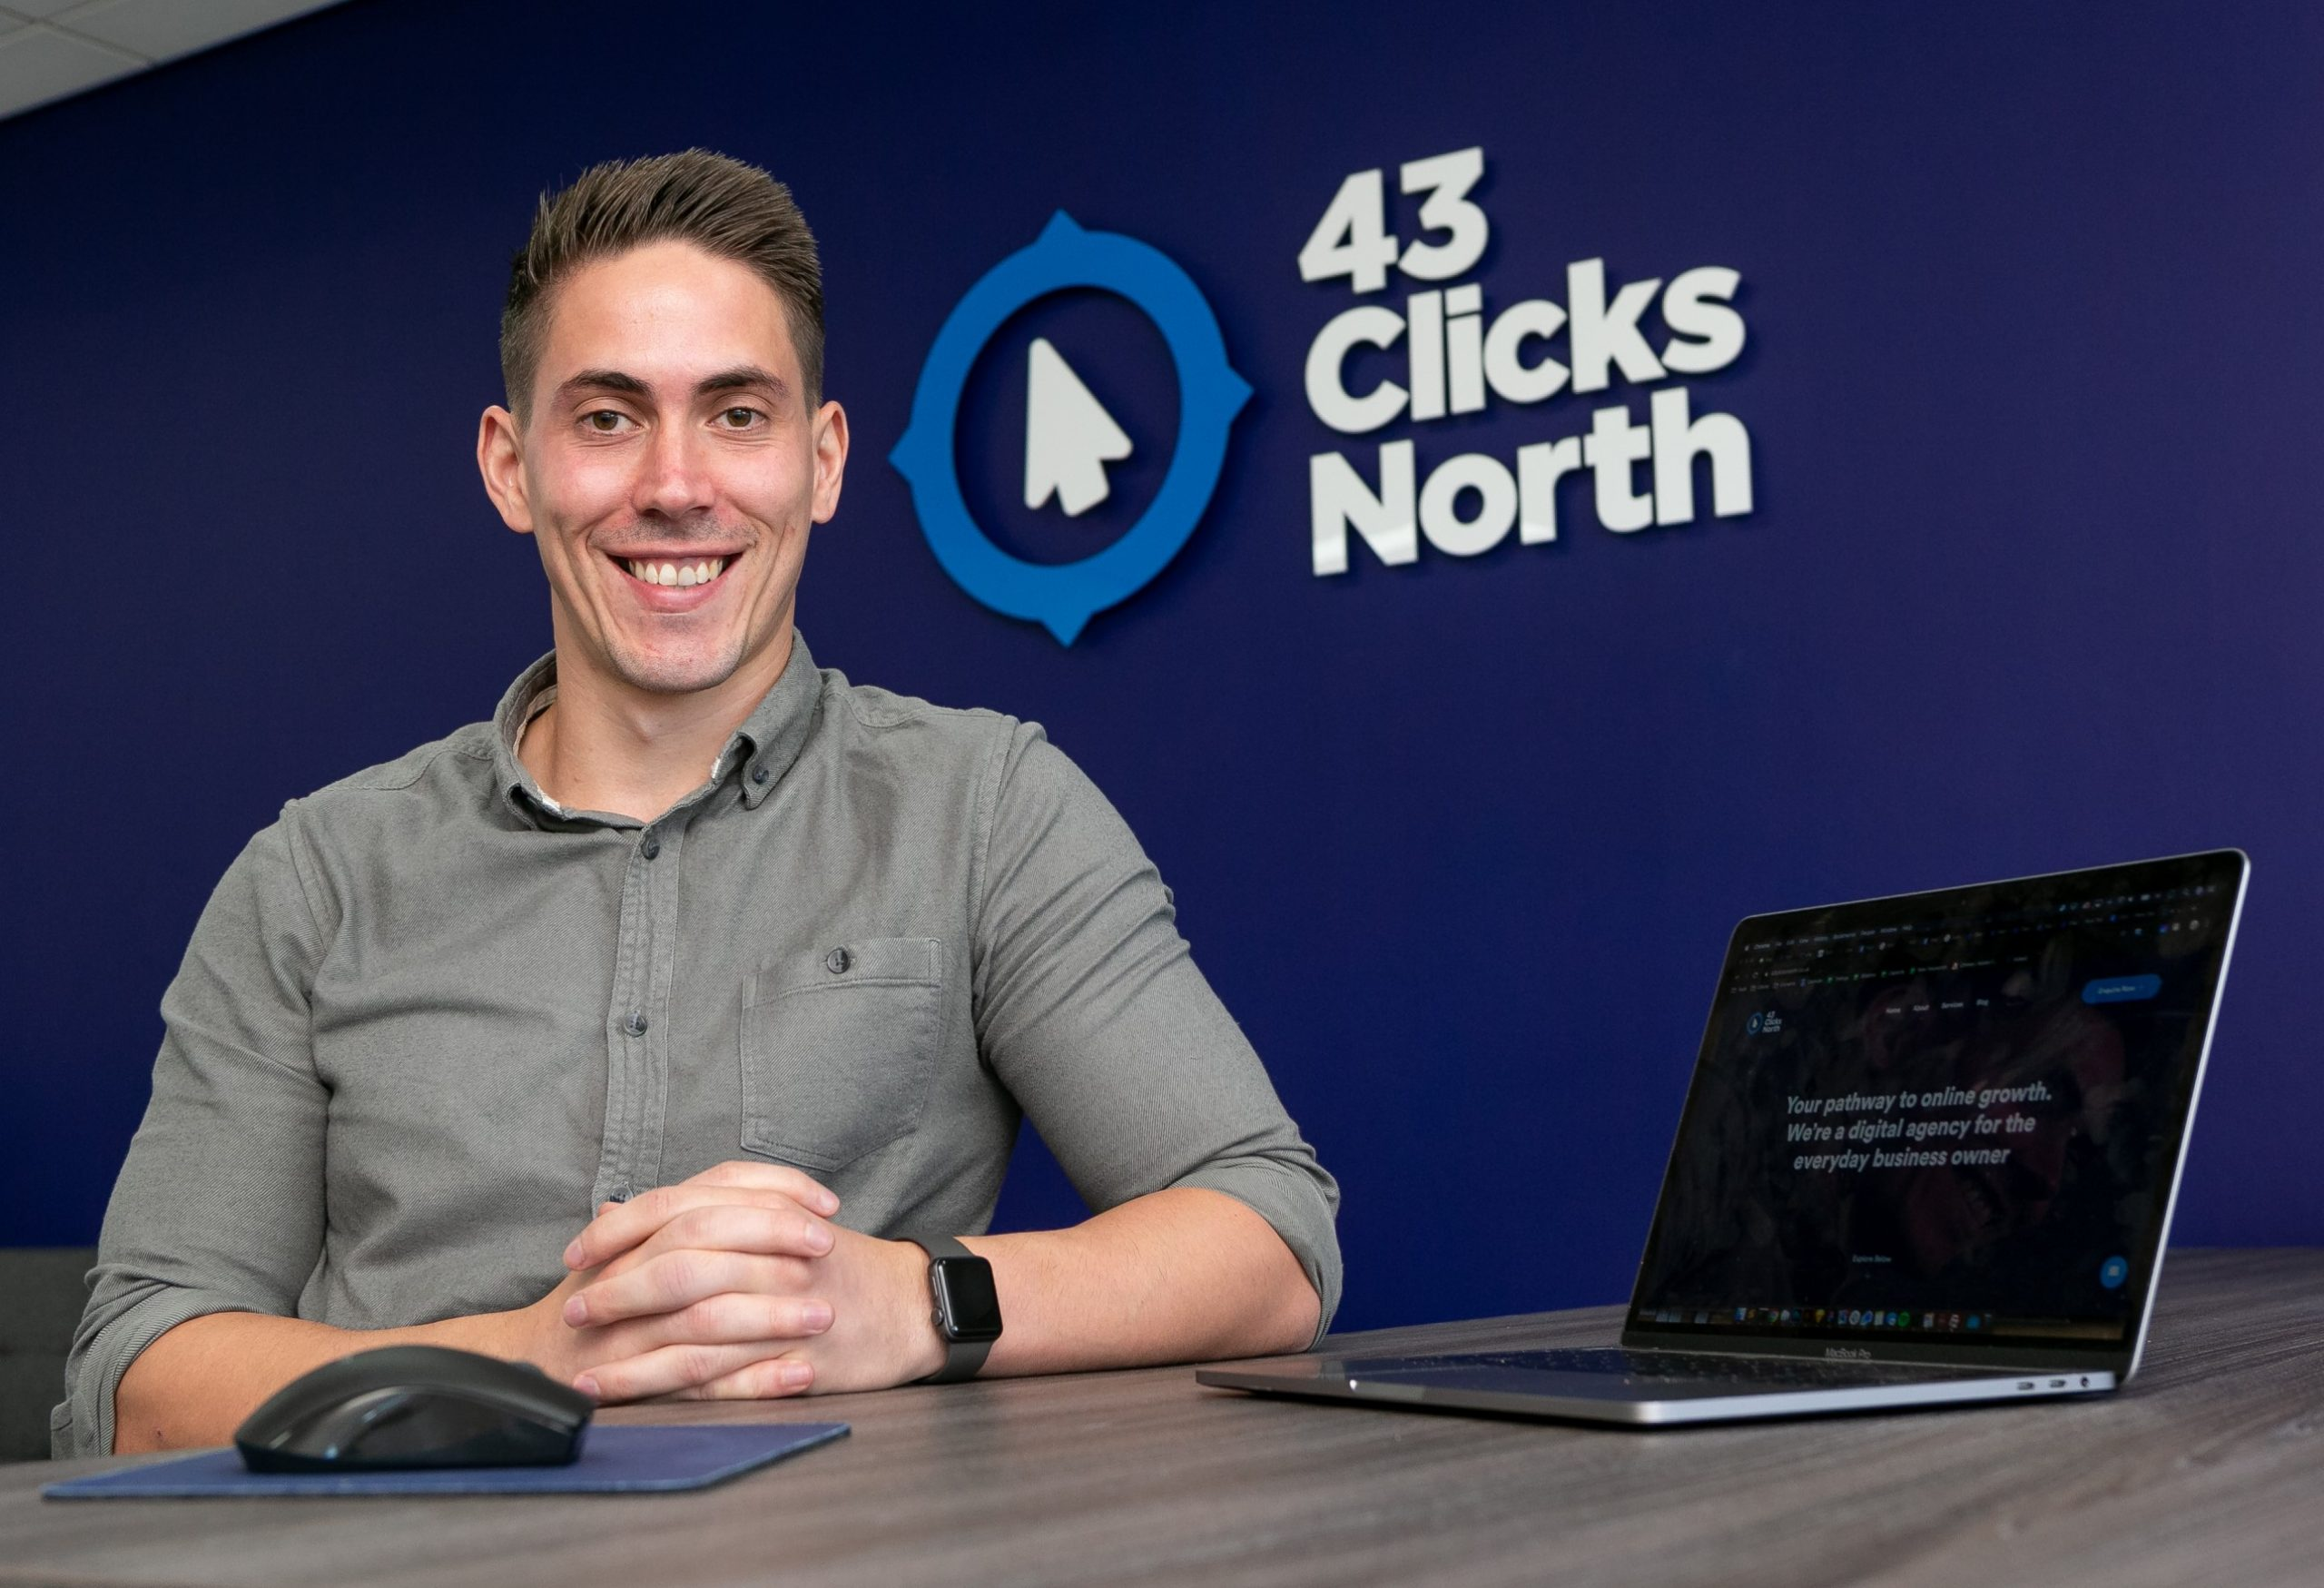 You are currently viewing 43 Clicks North set for office switch as numbers rise